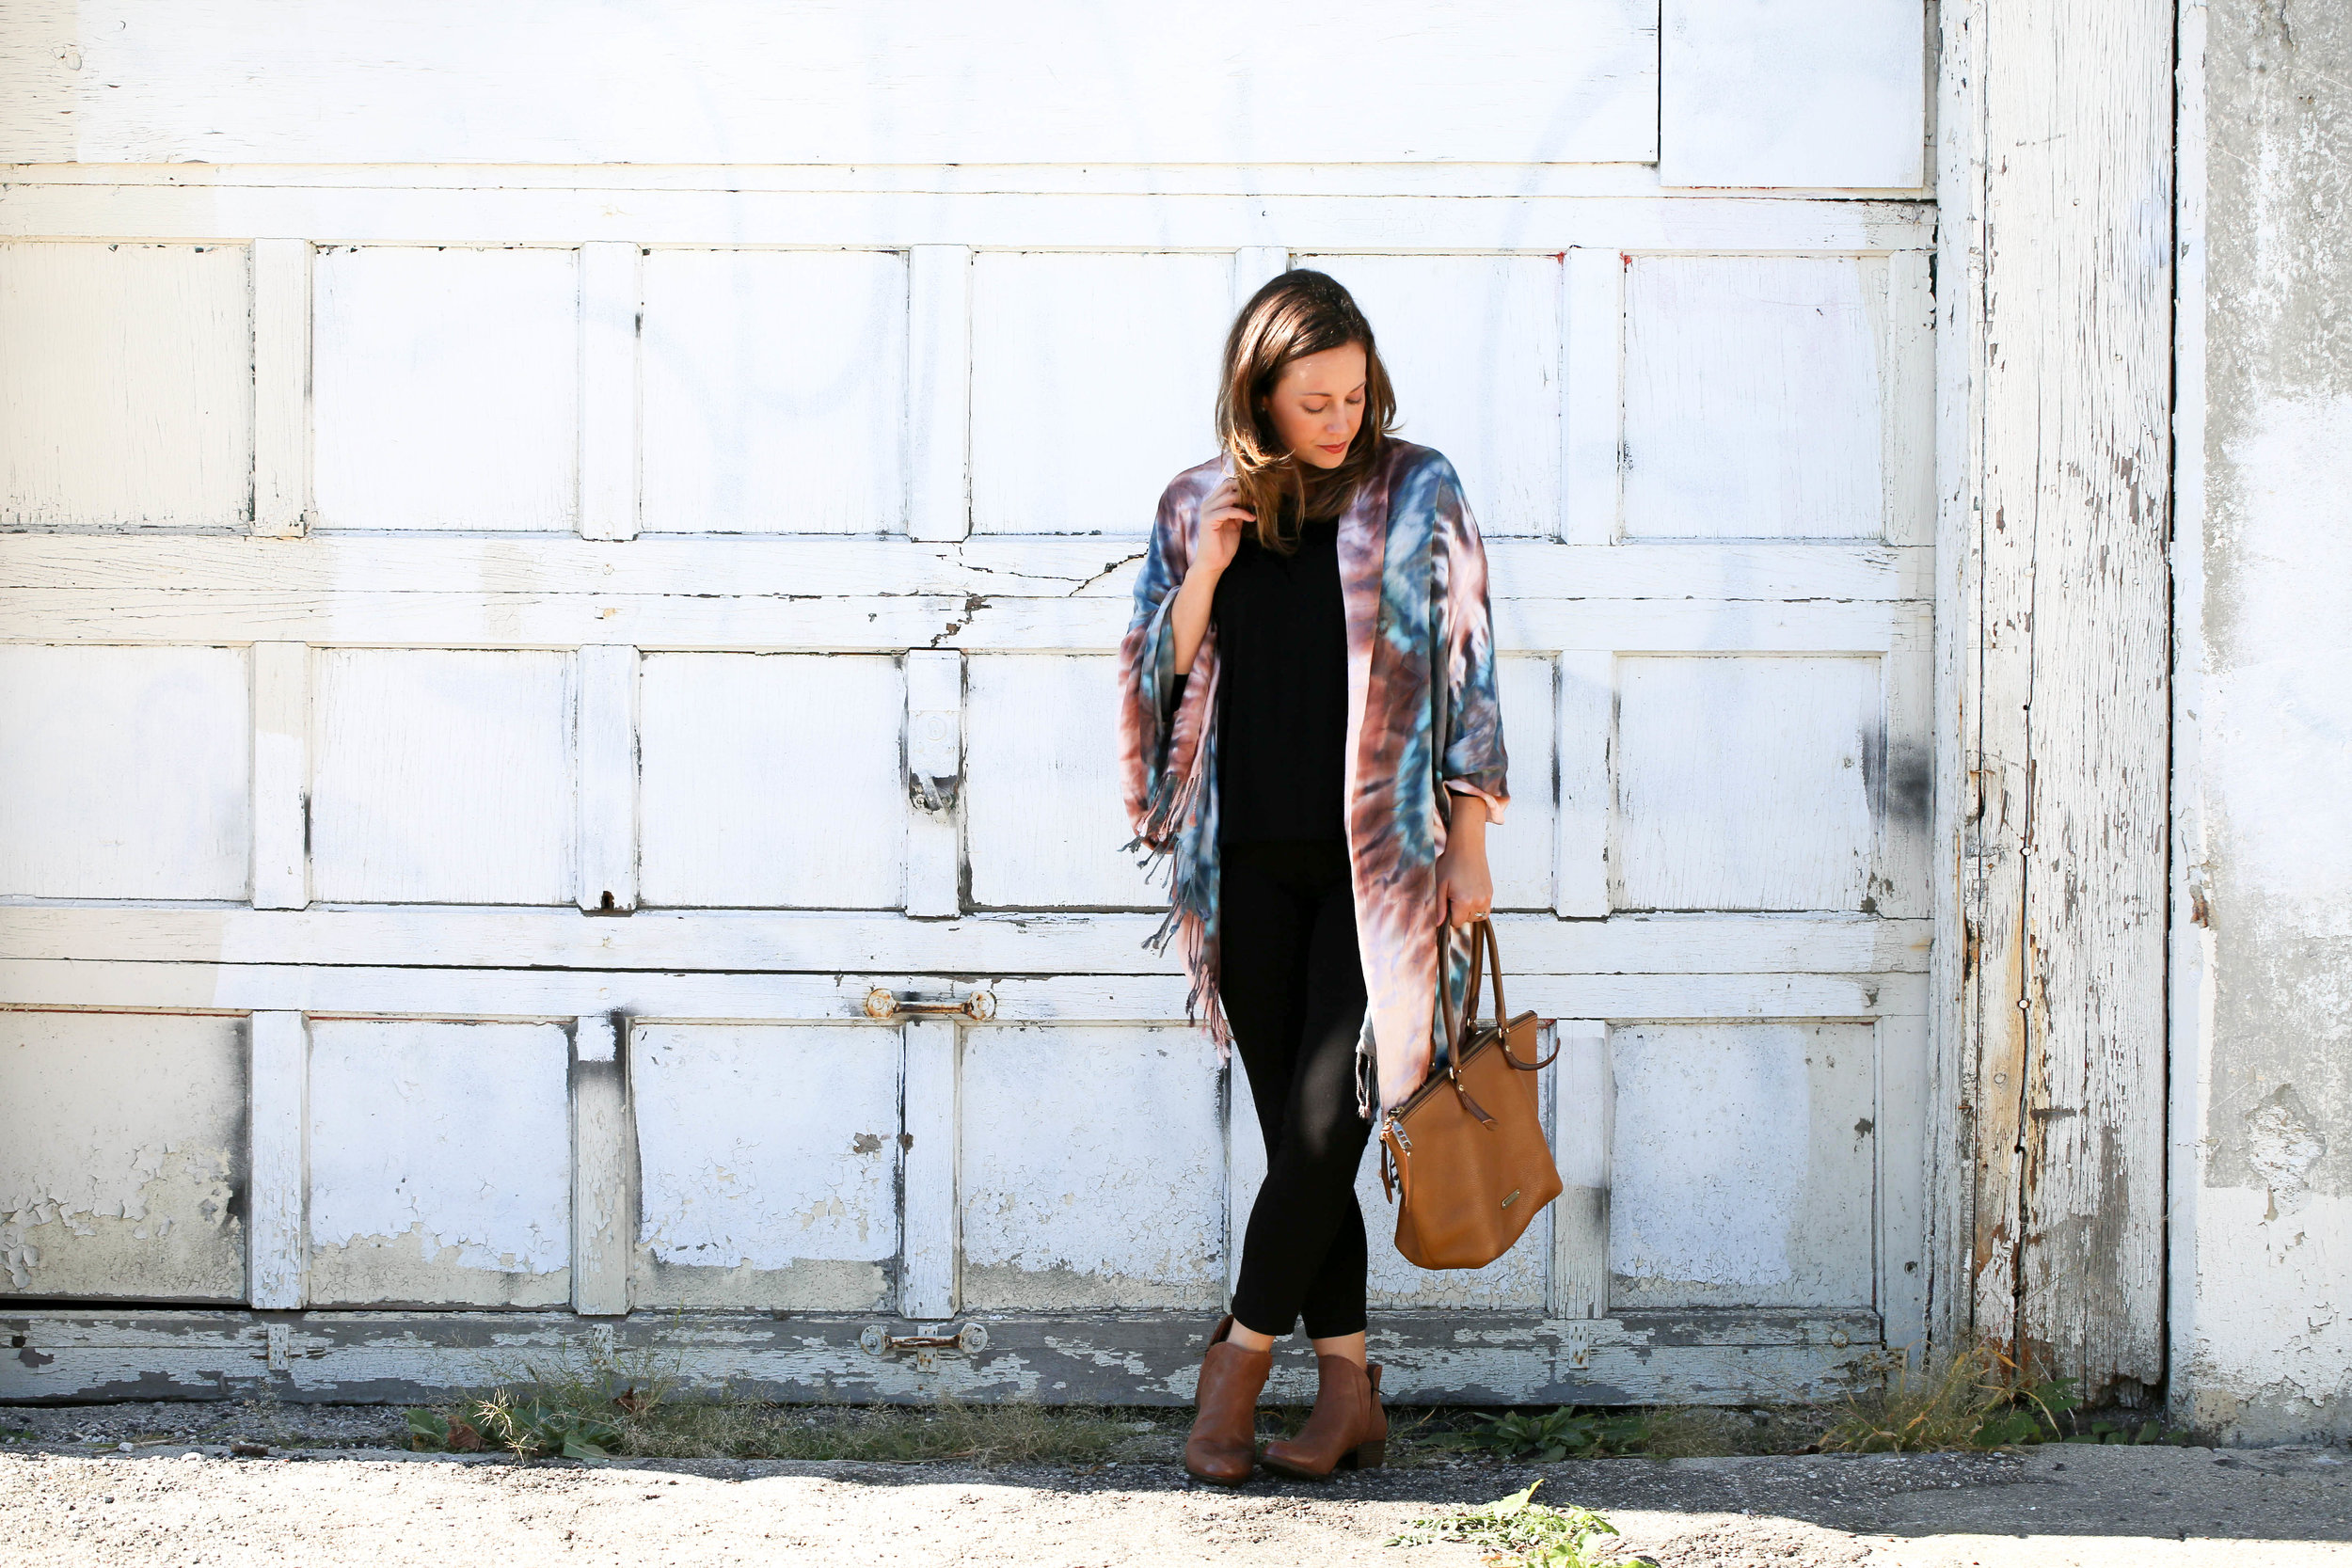 4 ways to tie a scarf, scarves, fall fashion, fall scarves, how to wear tie dye, tie dye fashion, tie dye, fall prints, autumn, best accessories, pop of color, statement piece, my fall fashion, style with scarves,